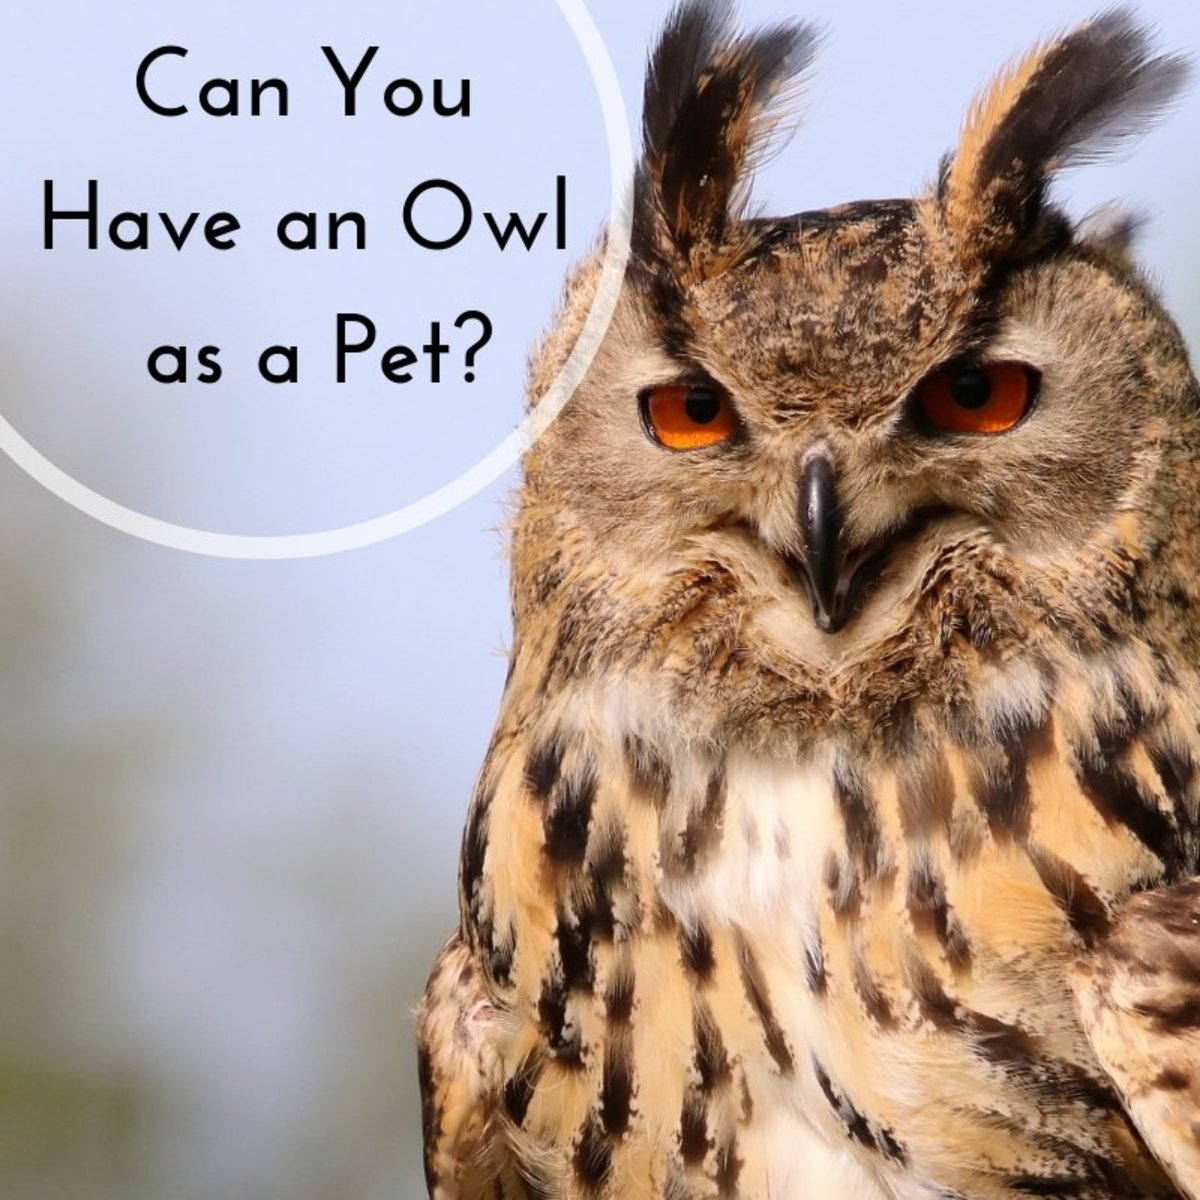 Keeping Owls as Pets: Is It Legal?